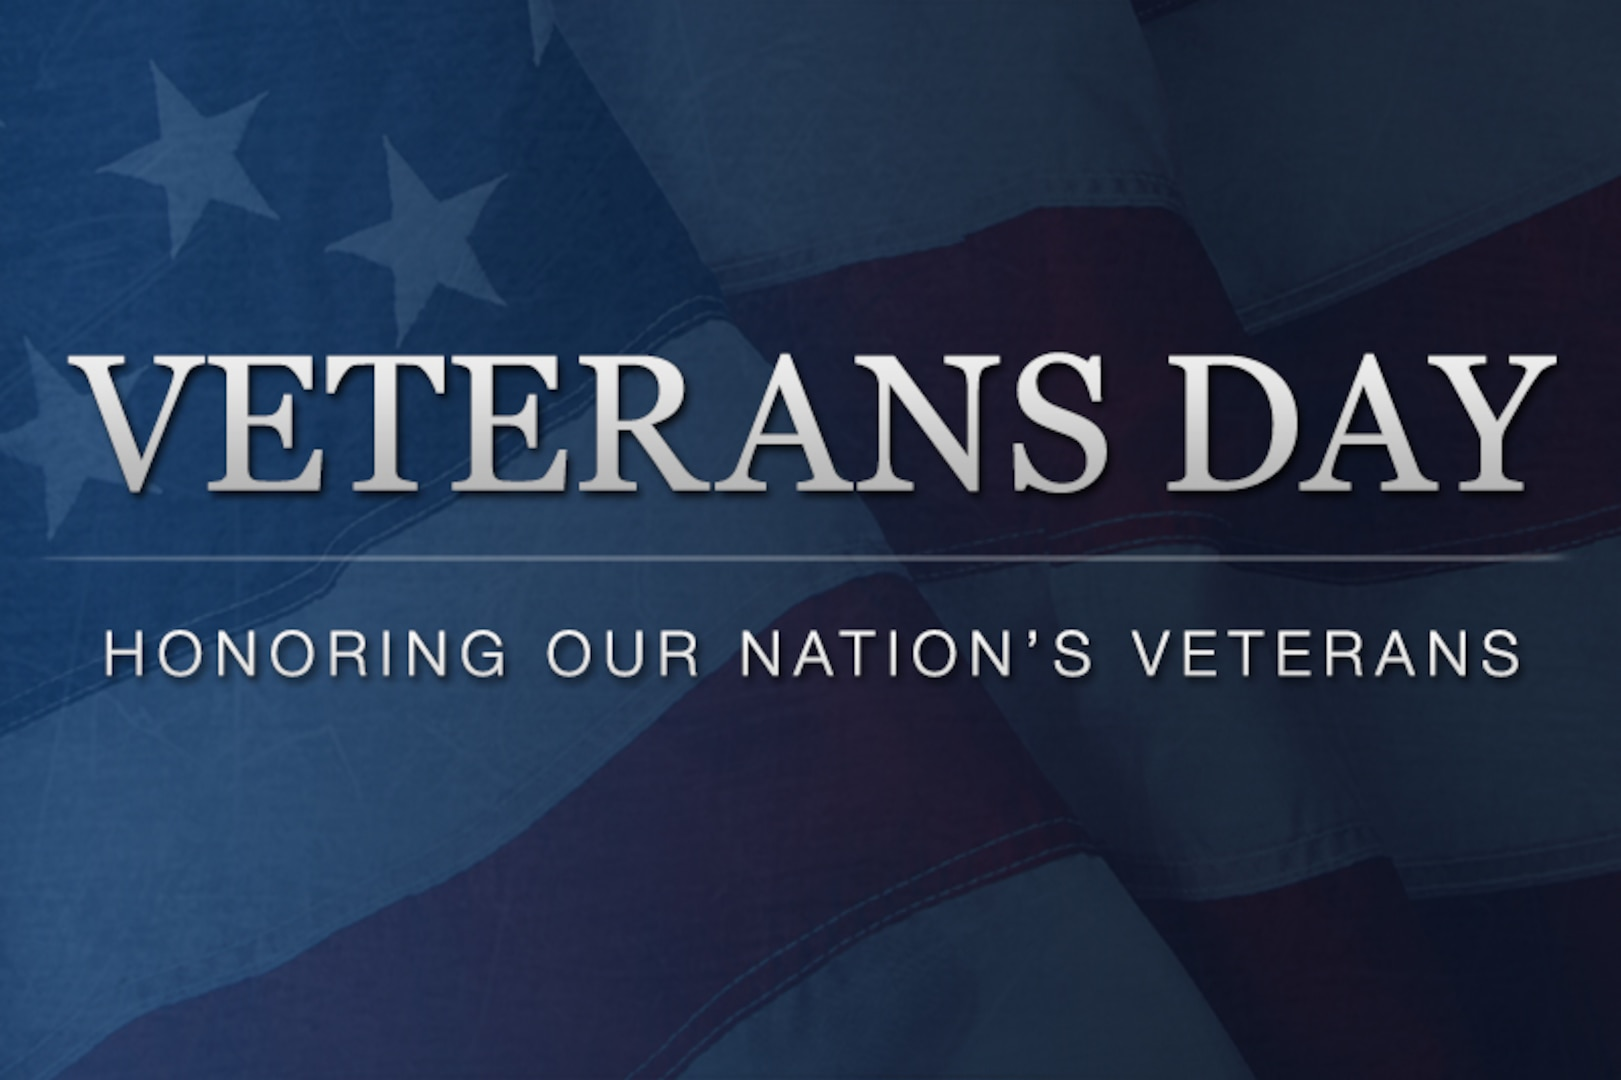 """President Barack Obama praised the men and women in uniform for their service and sacrifice to America throughout the decades, and  proclaimed Nov. 11, 2015, as Veterans Day to """"reflect on the immeasurable burdens borne by so few in the name of so many."""""""